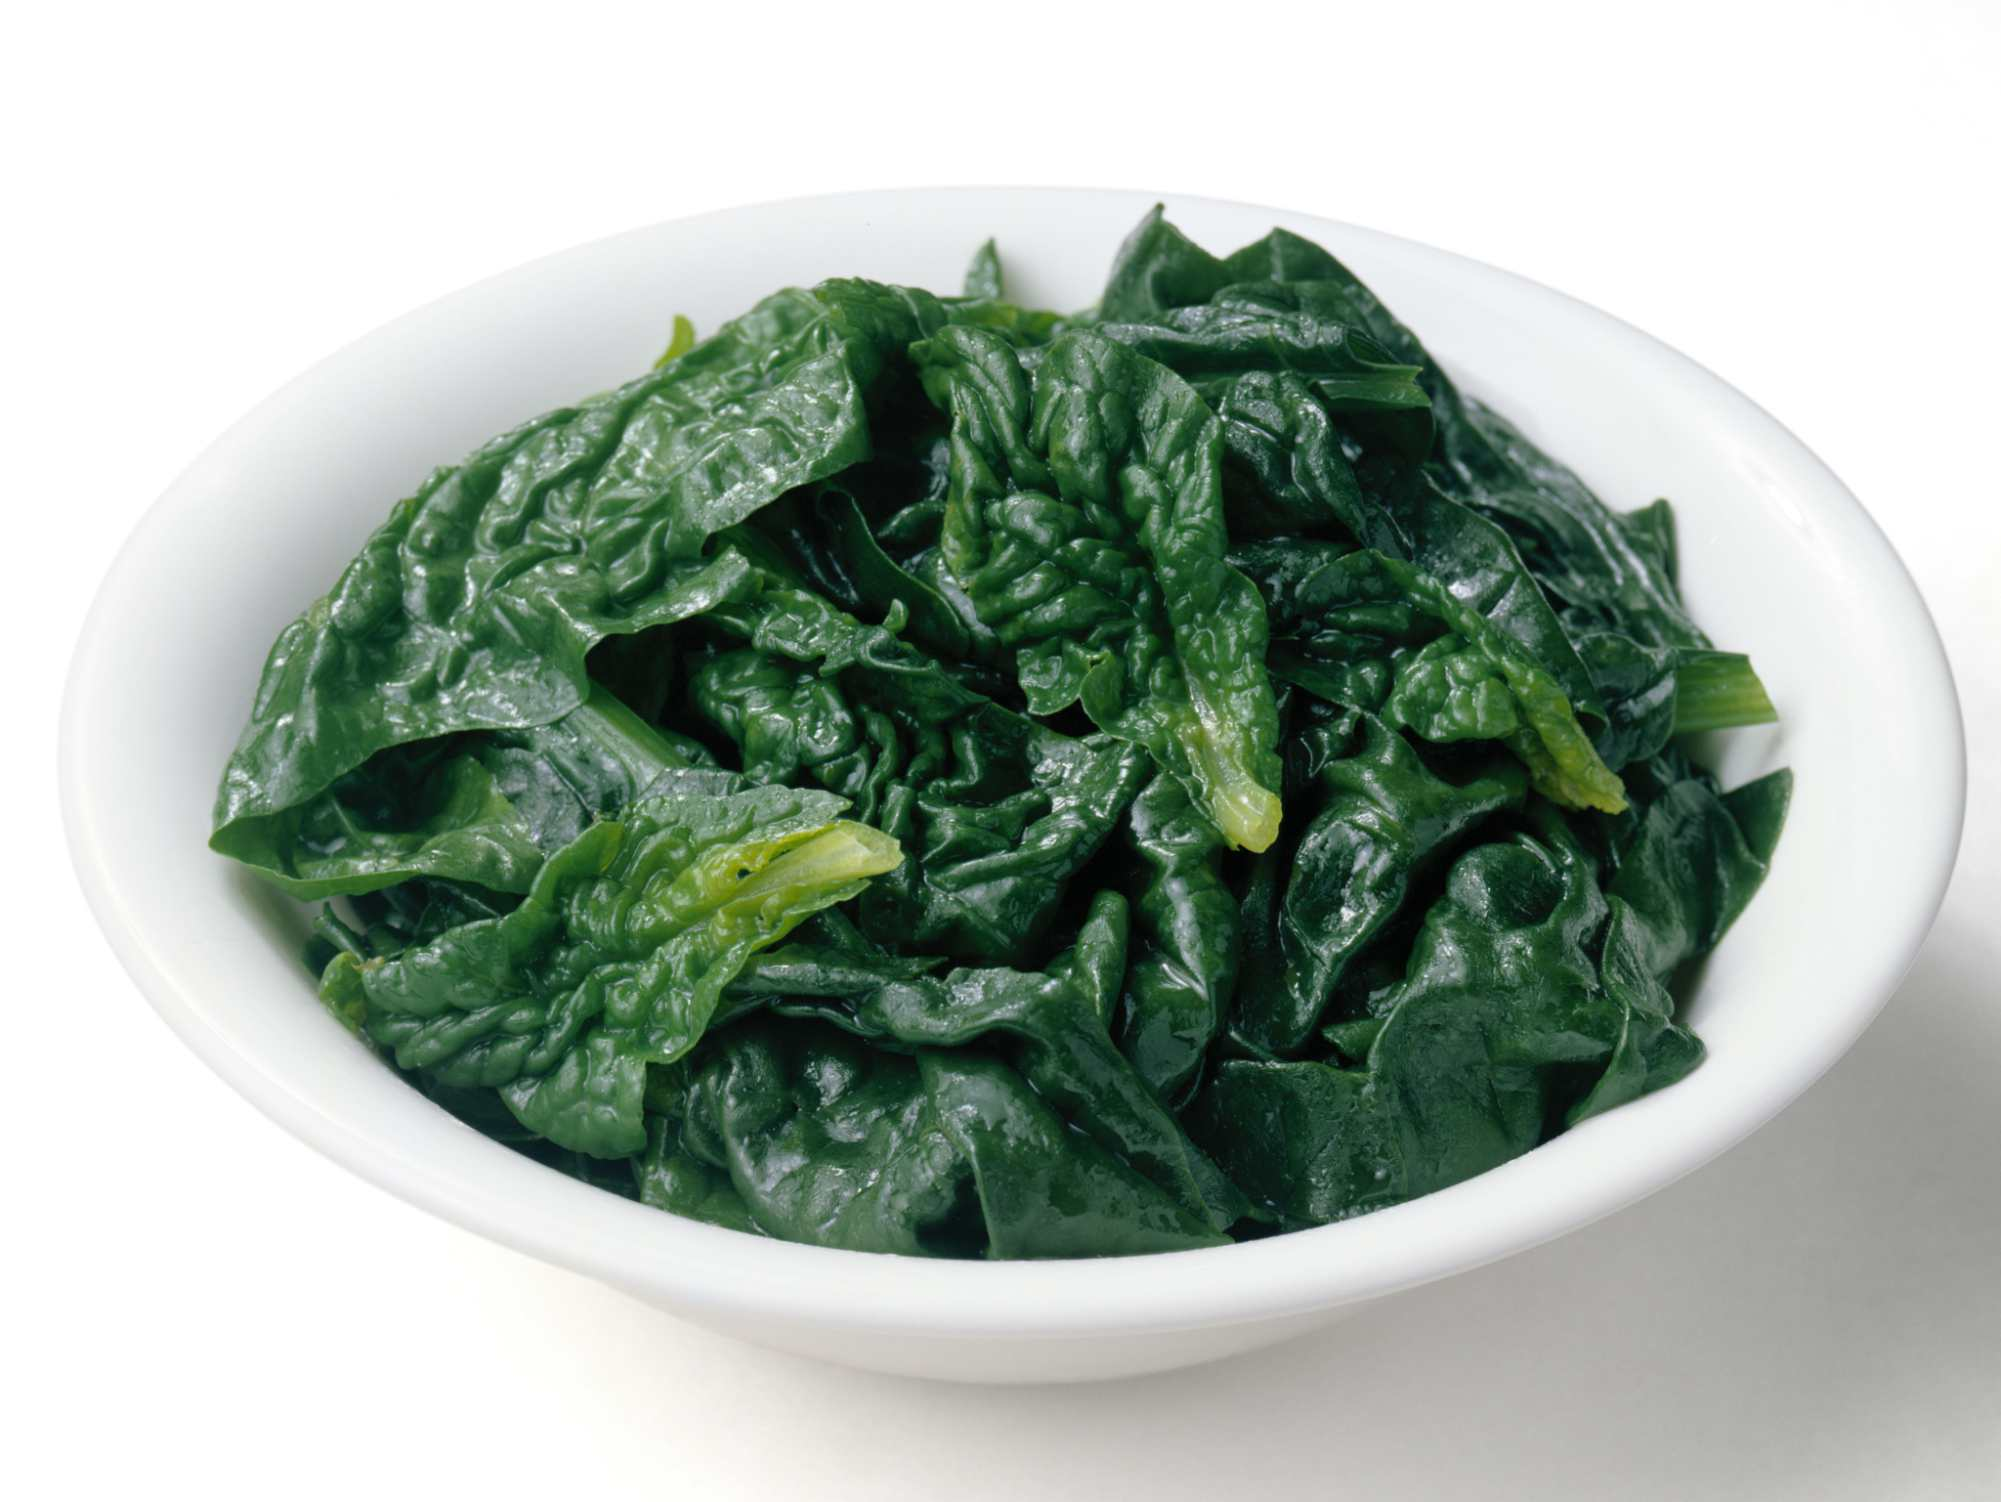 Steamed spinach is high in calcium.